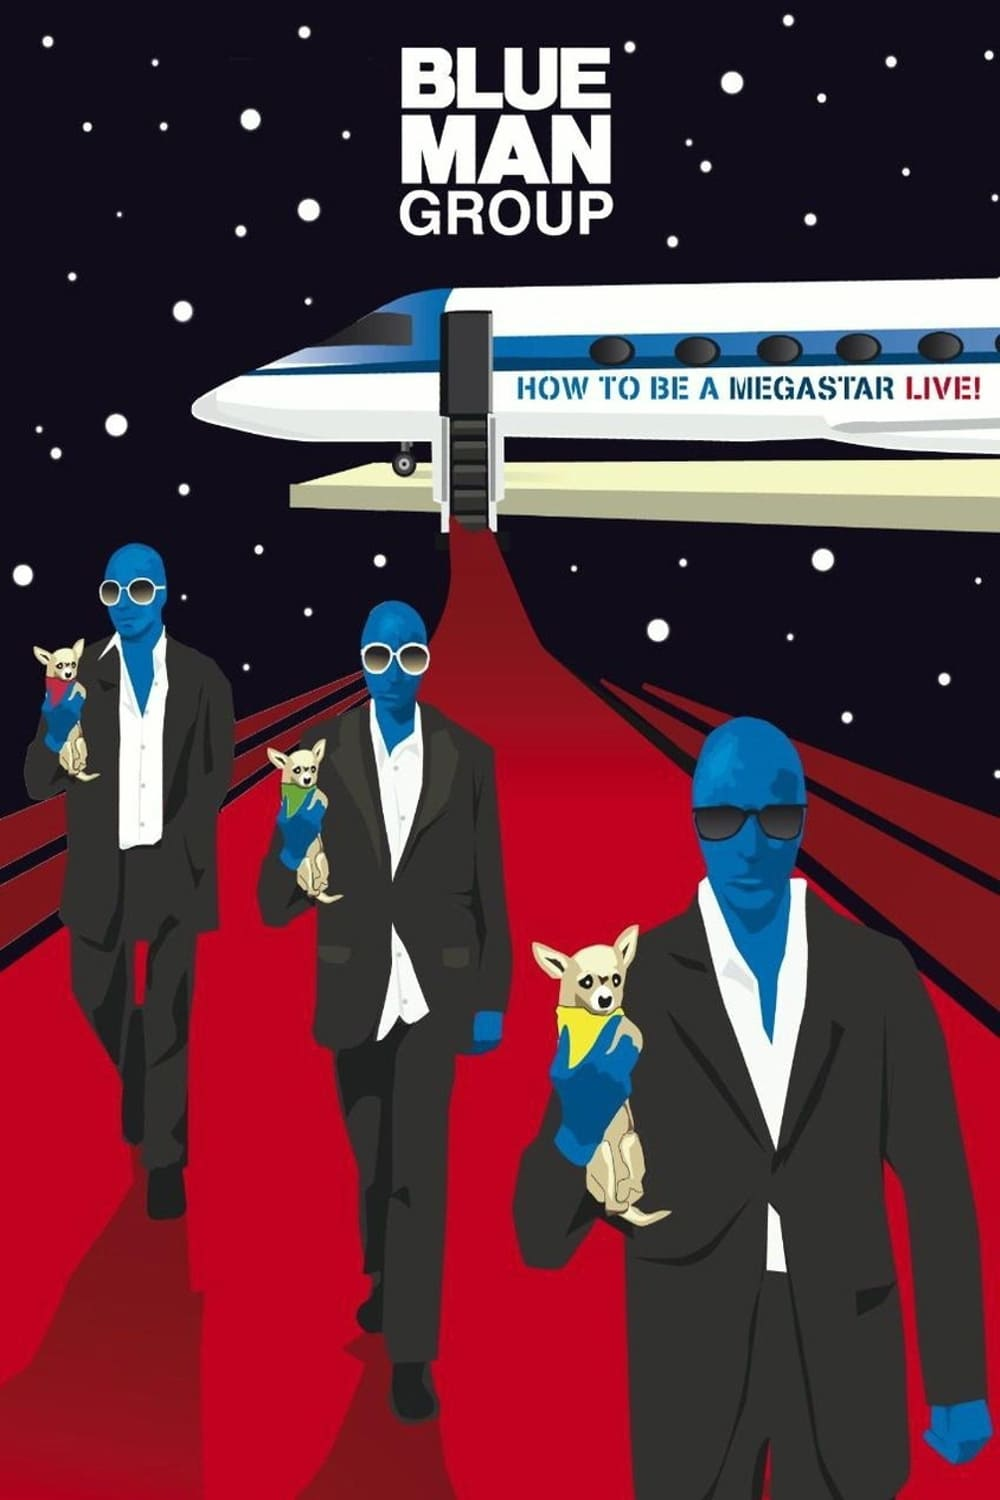 Blue Man Group: How to Be a Megastar Live! (2008)